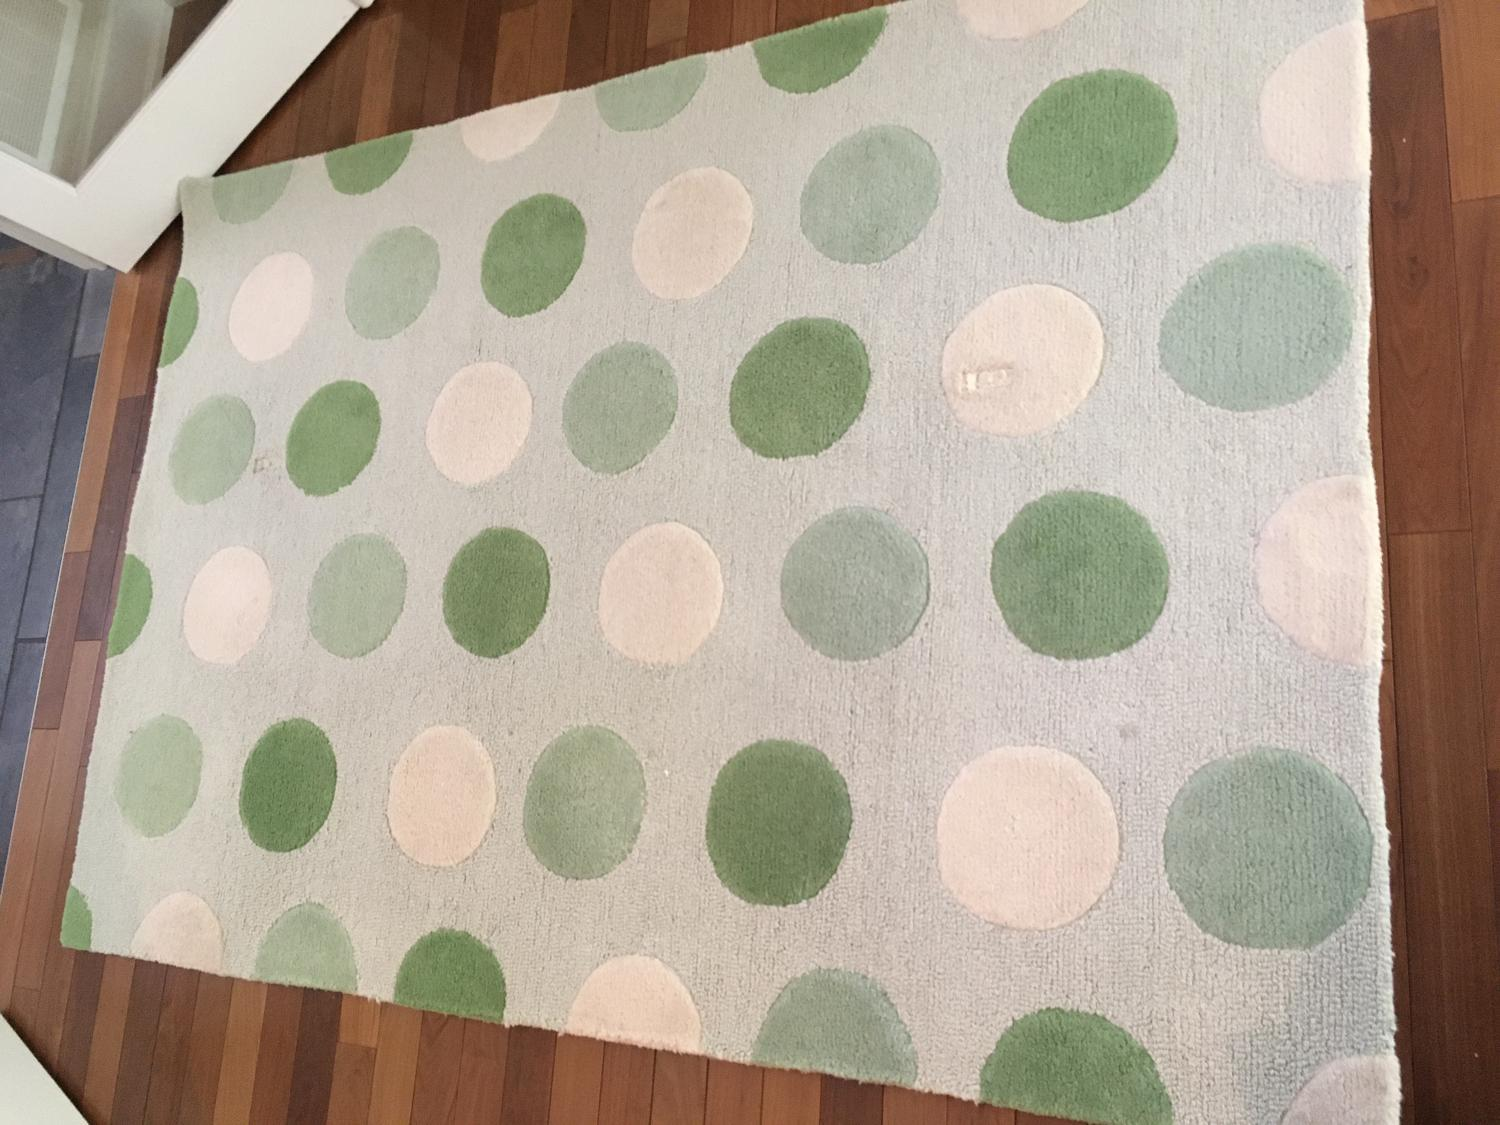 Best Pottery Barn Kids 5x8 Rug For Sale In Vaudreuil